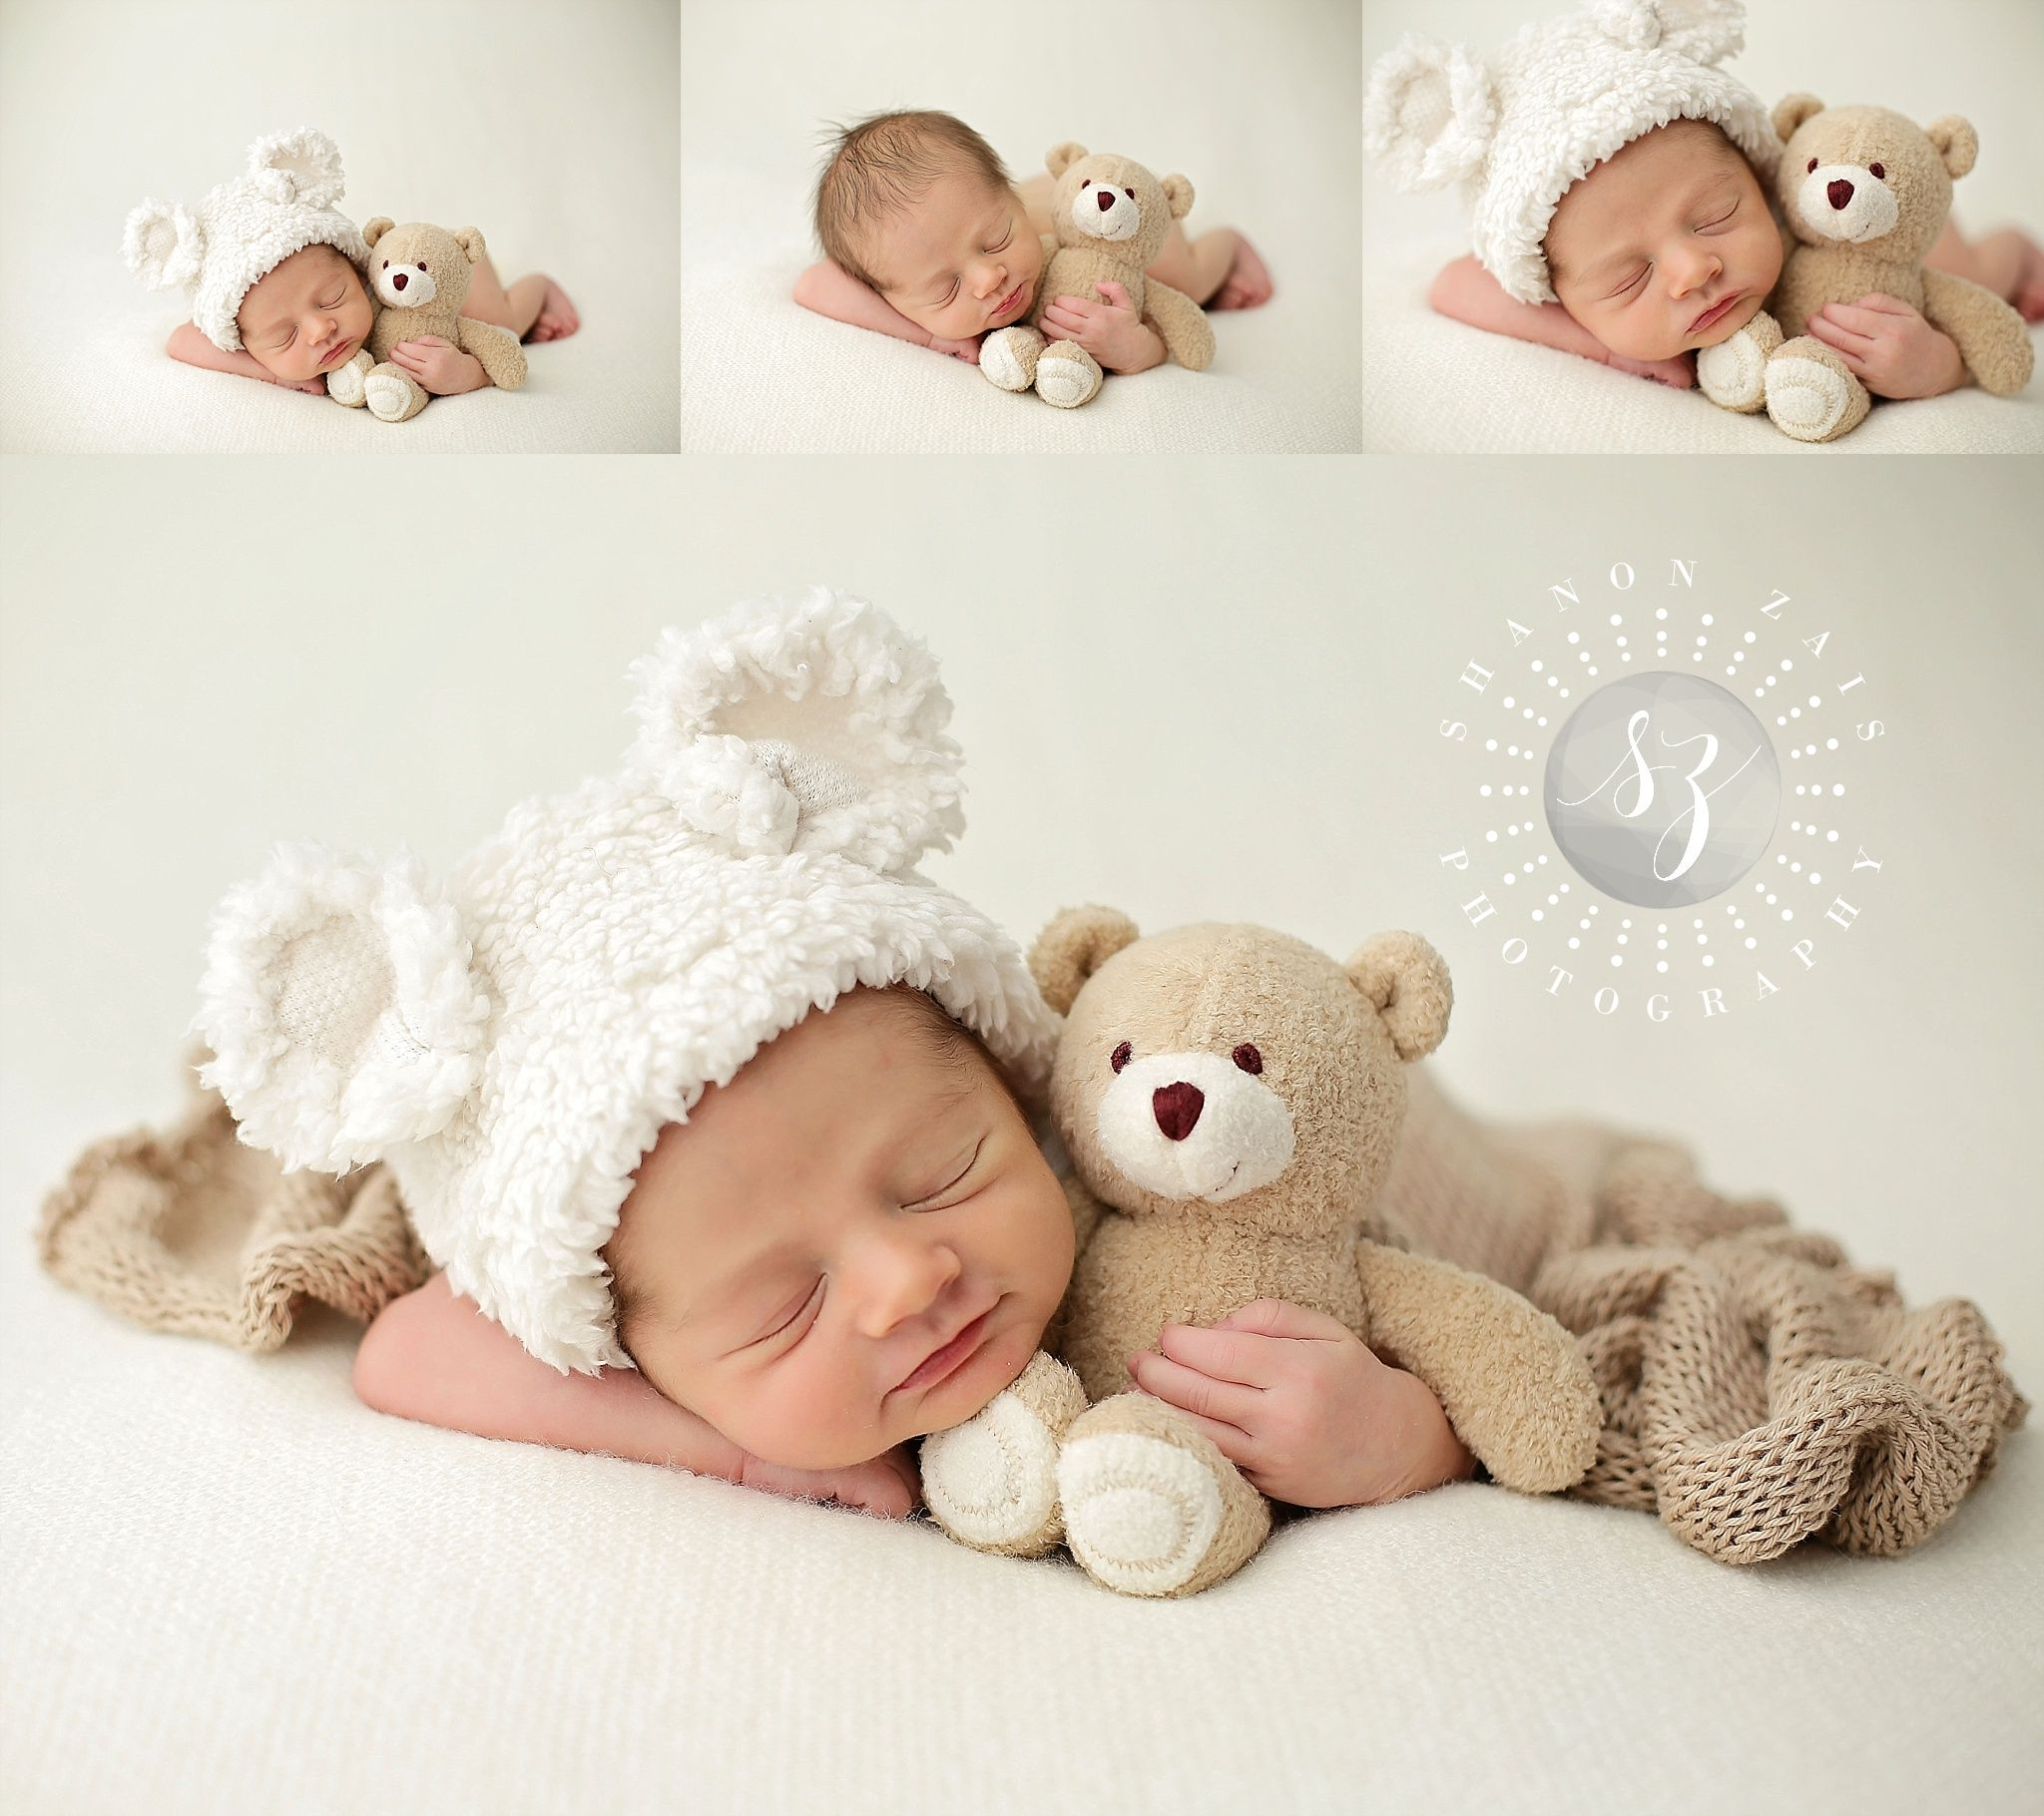 Rockwall Newborn Photographer #babyteddybear